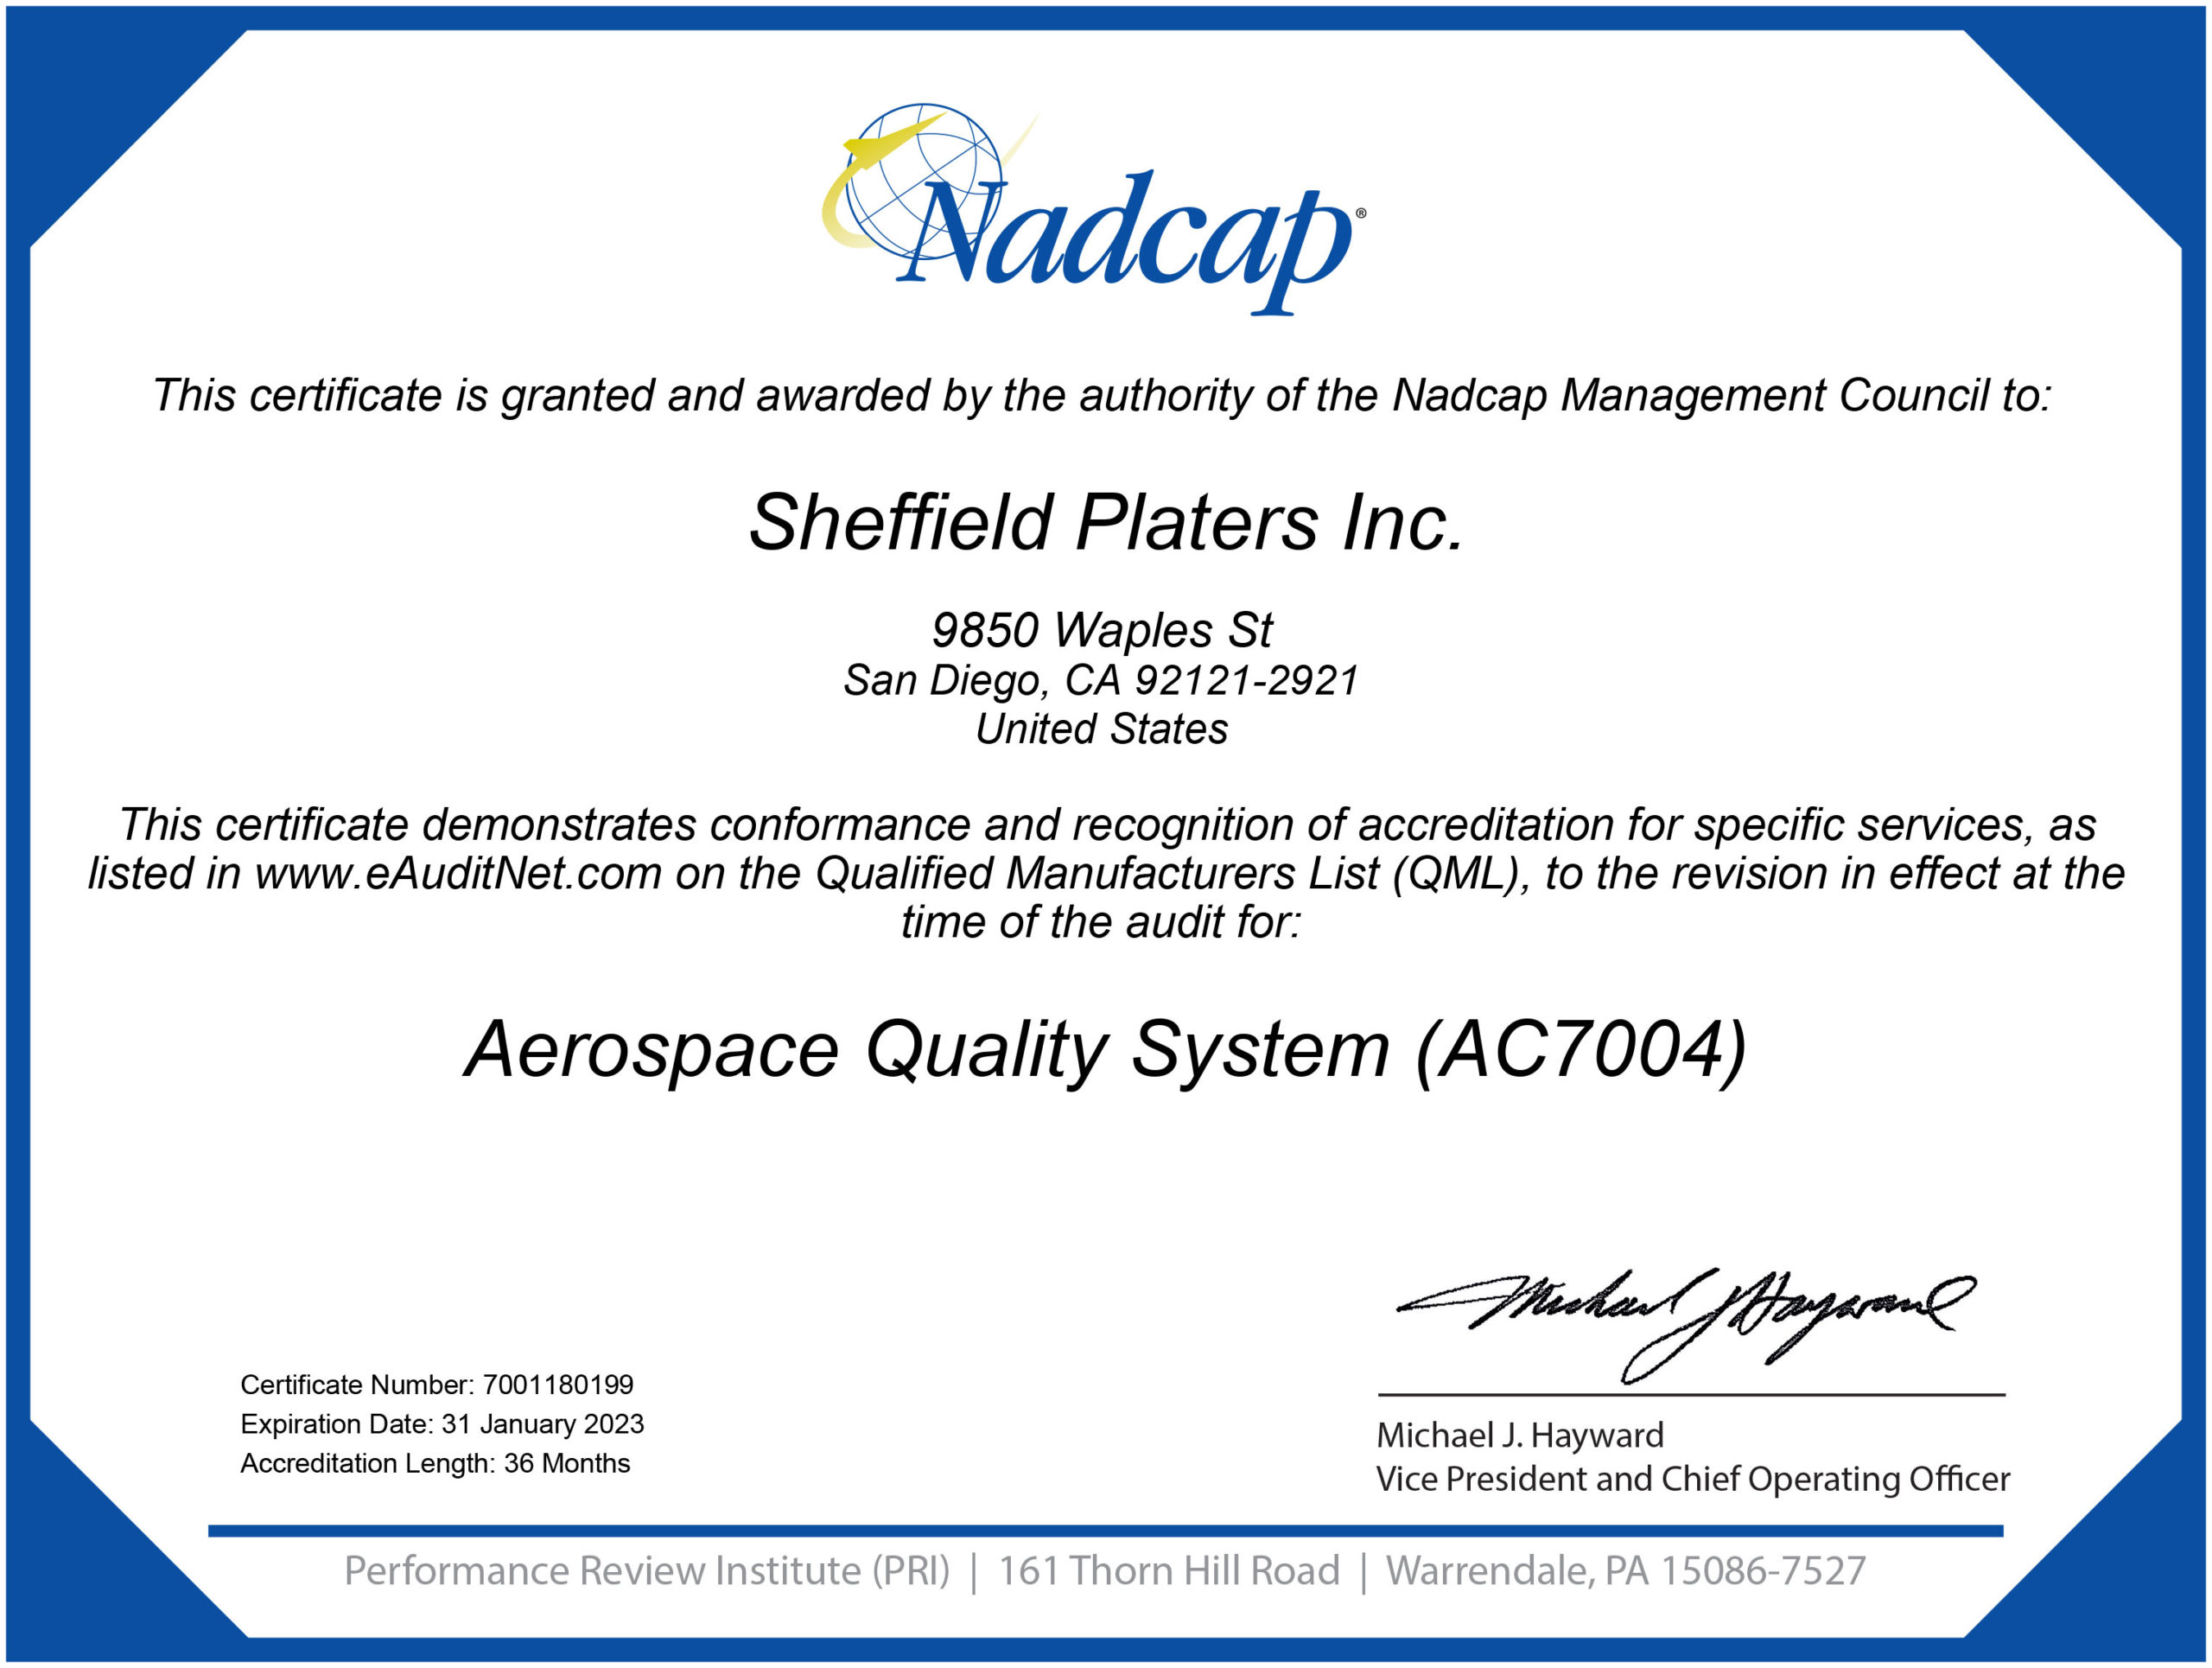 Nadcap Aerospace Quality Systems 180199